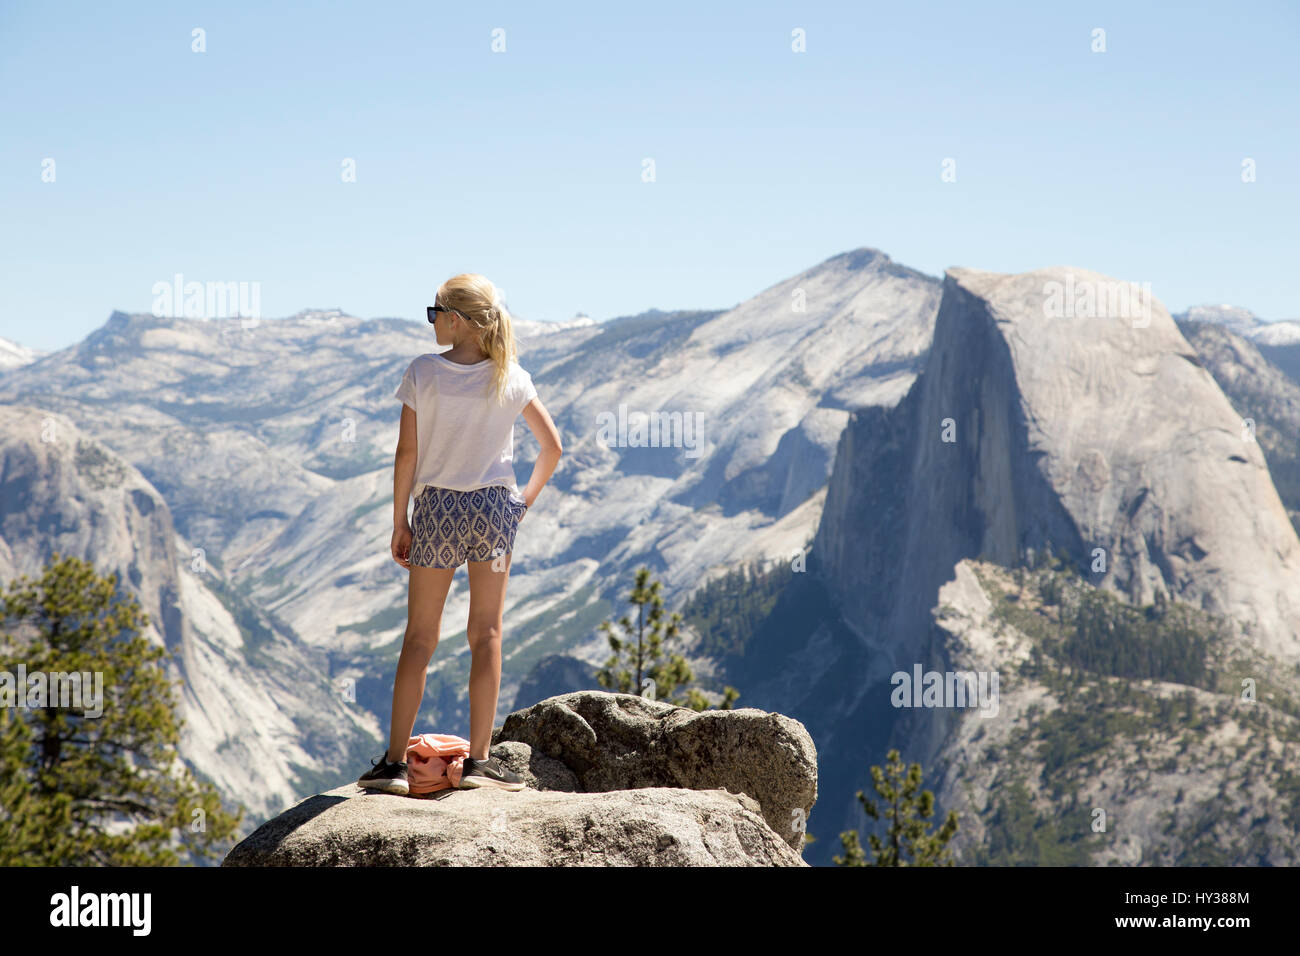 USA, California, Yosemite, Girl (12-13) looking at view with Sentinel Dome and Yosemite Falls - Stock Image